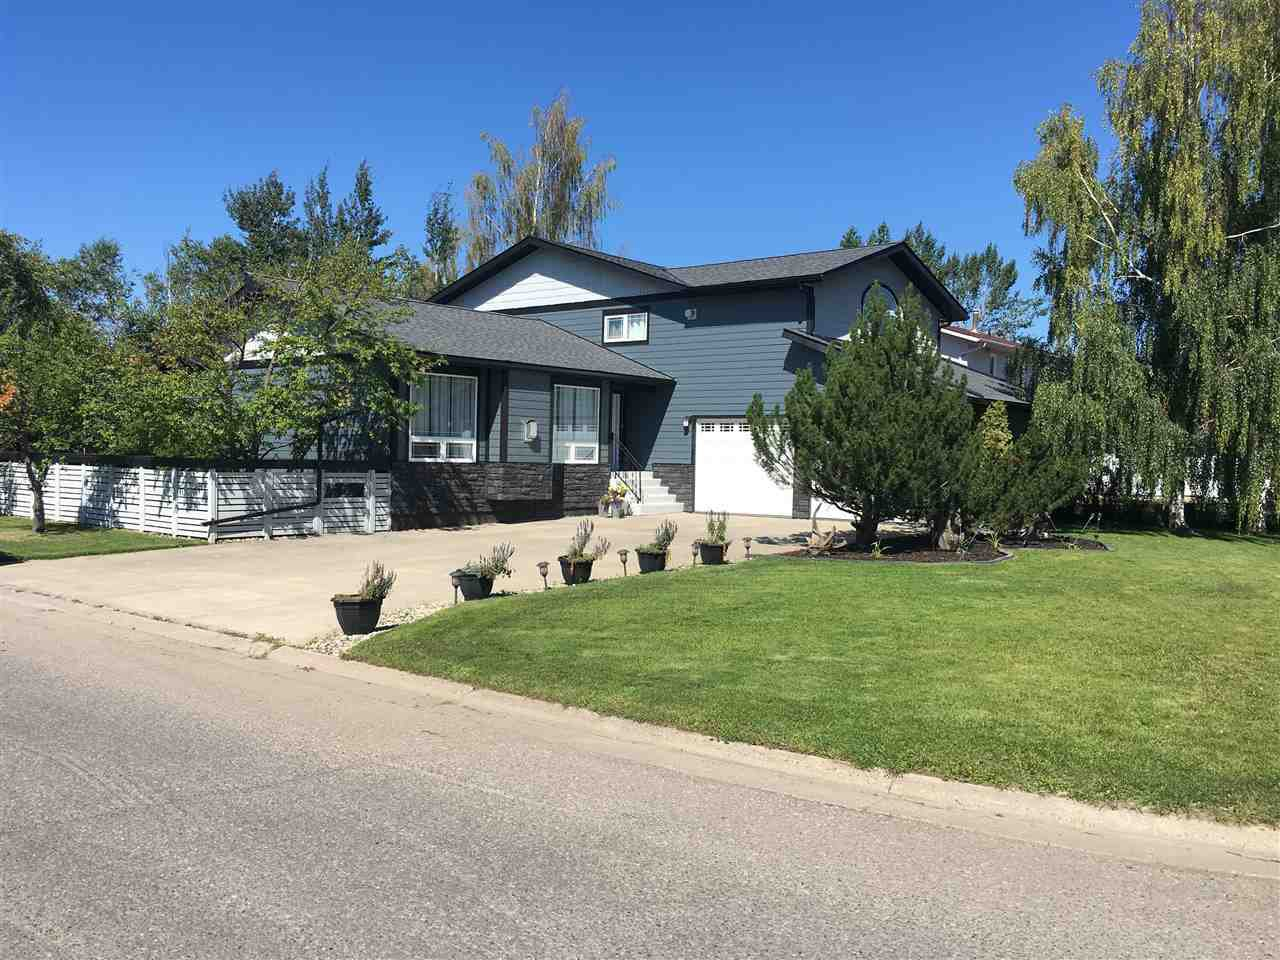 Main Photo: 10404 106 Avenue in Fort St. John: Fort St. John - City NW House for sale (Fort St. John (Zone 60))  : MLS®# R2430863